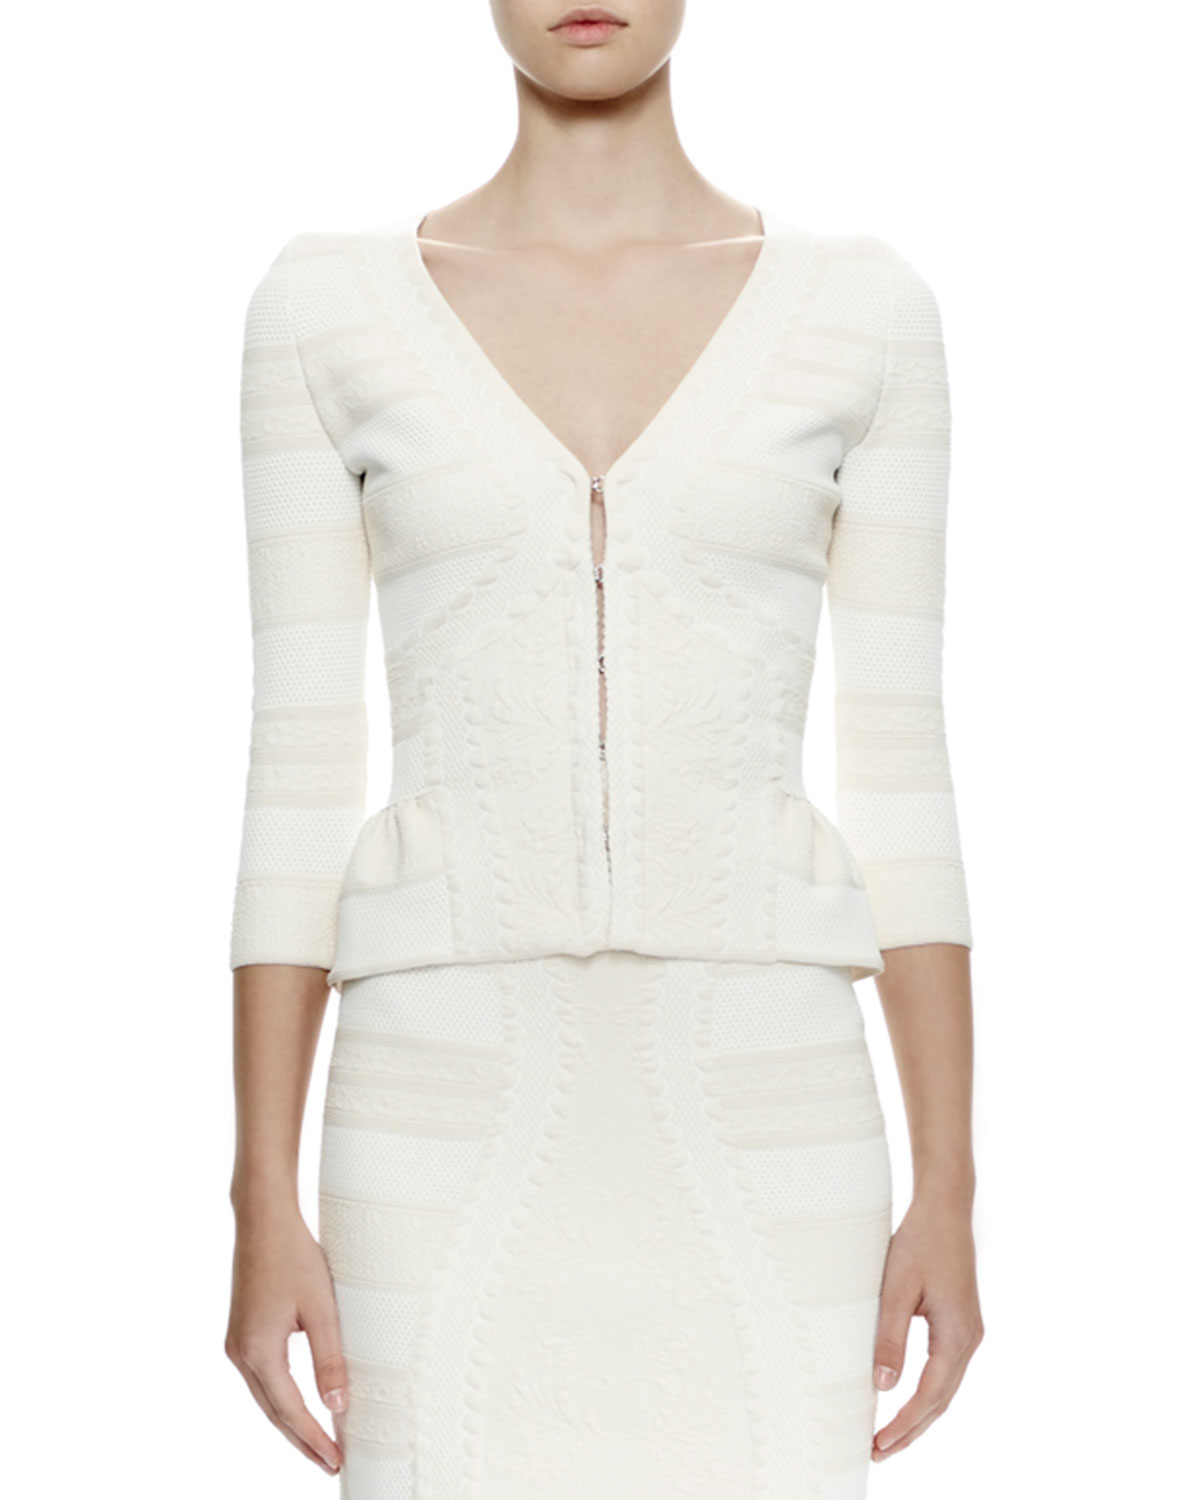 Alexander McQueen 3/4-Sleeve Lace Jacquard Cardigan, Ivory, Women's, Size: LARGE